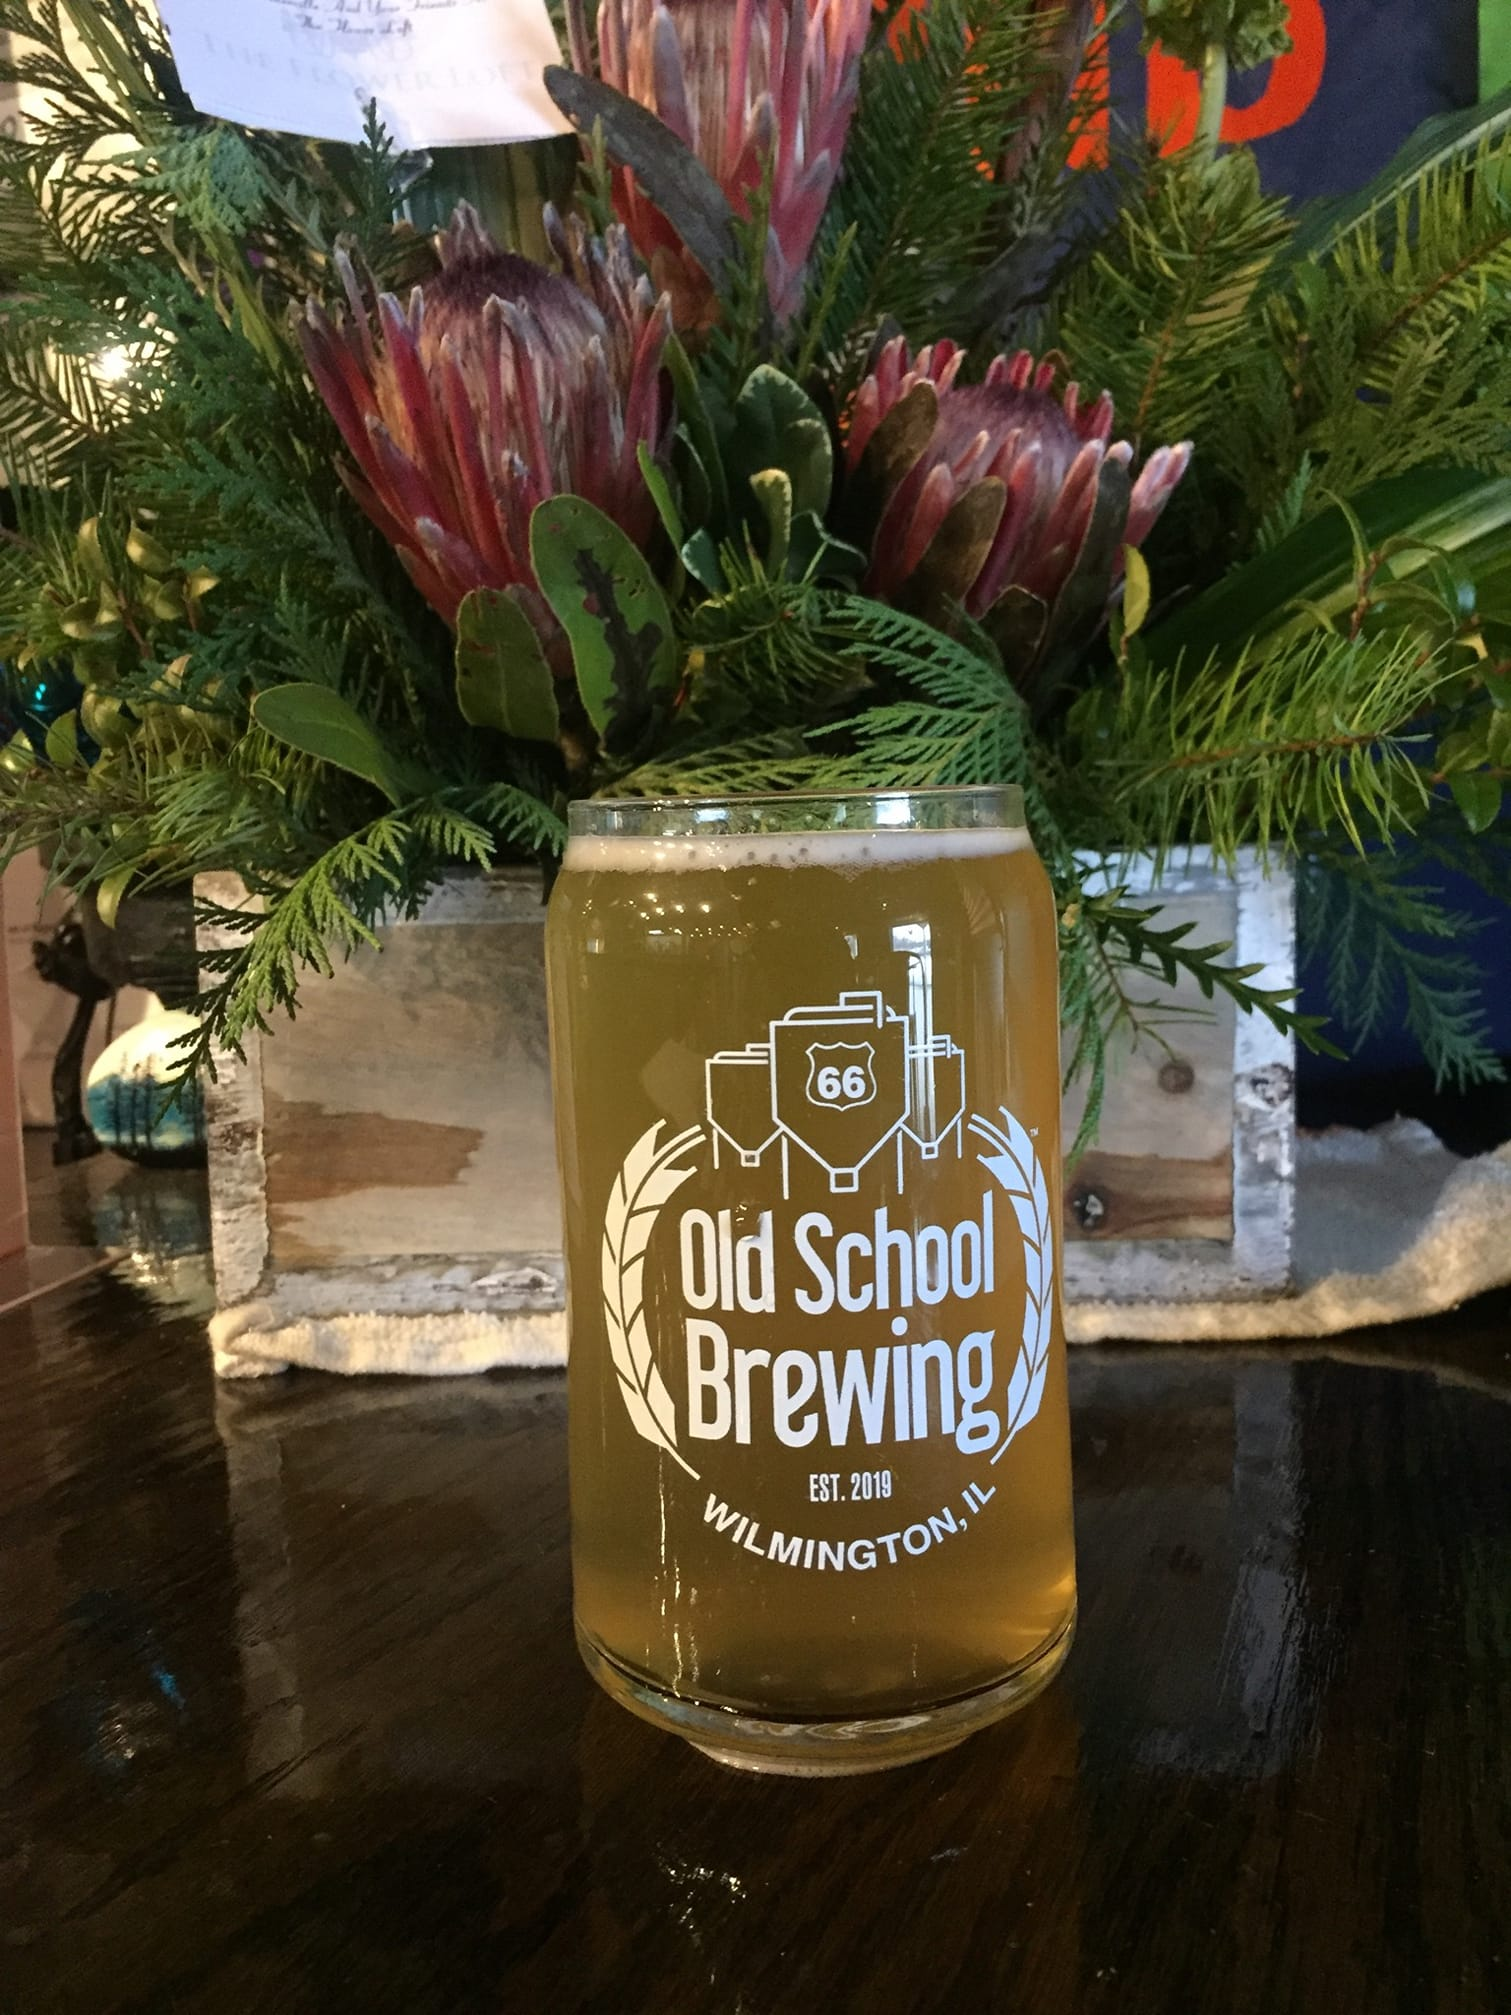 Glass of beer in front of seasonal decorations at Rt66 Old School Brewing